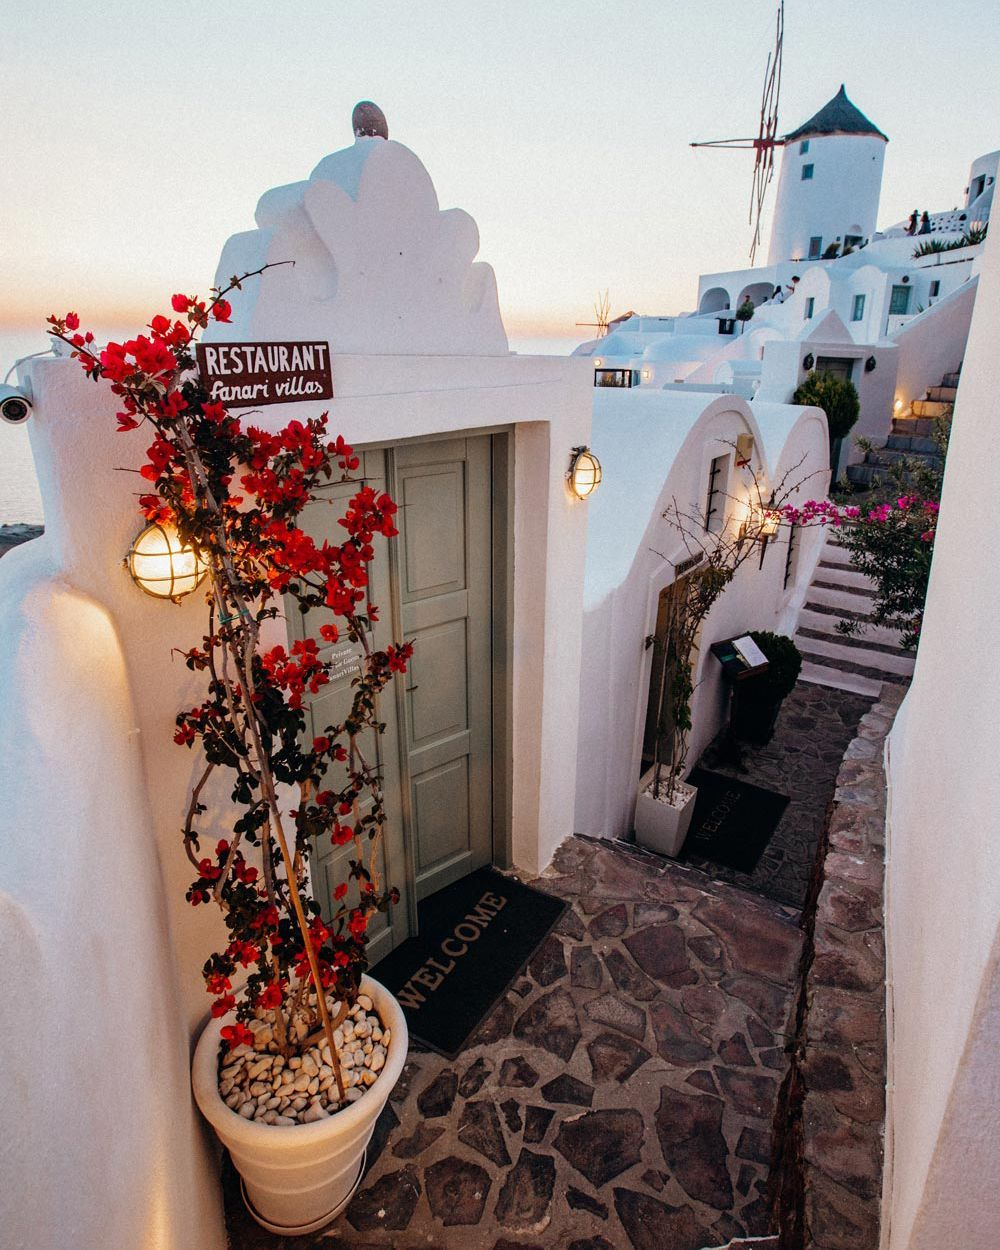 Best Spots For Your Santorini Pictures (With Map) • Stay Close Travel Far Traveling through mysterious and extraordinary countries! A bright journey through countries with extraordinary architecture! # Countries # Travel # Architecture # Beautiful photos